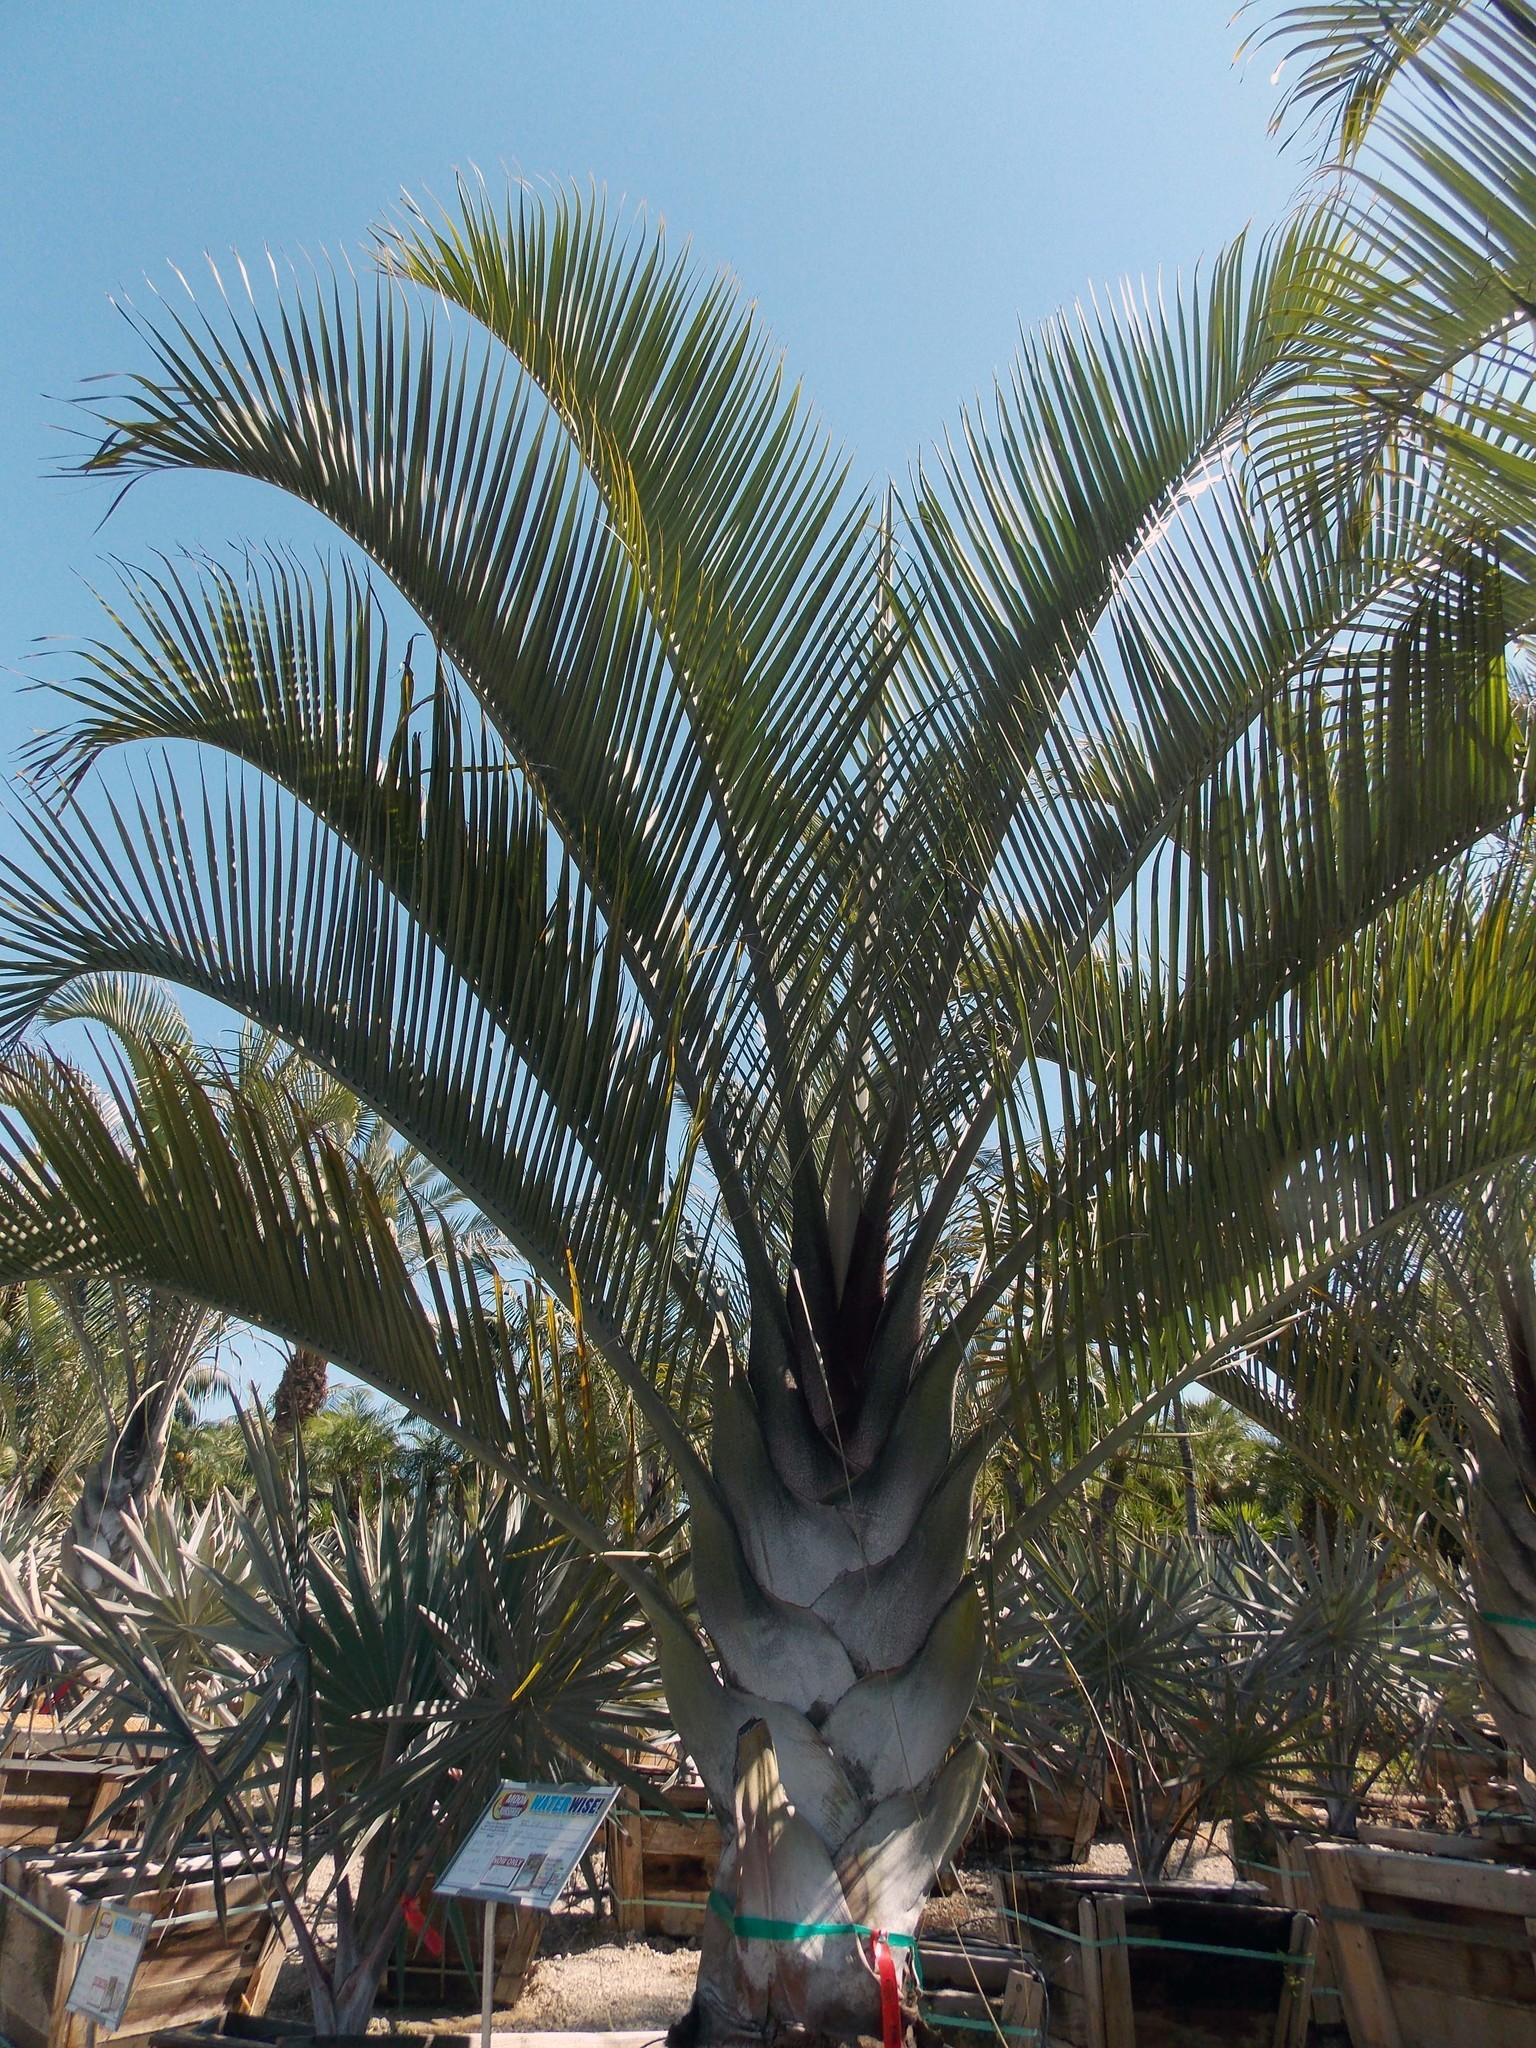 The palm fronds of a Triangle Palm arch gracefully from the trunk.